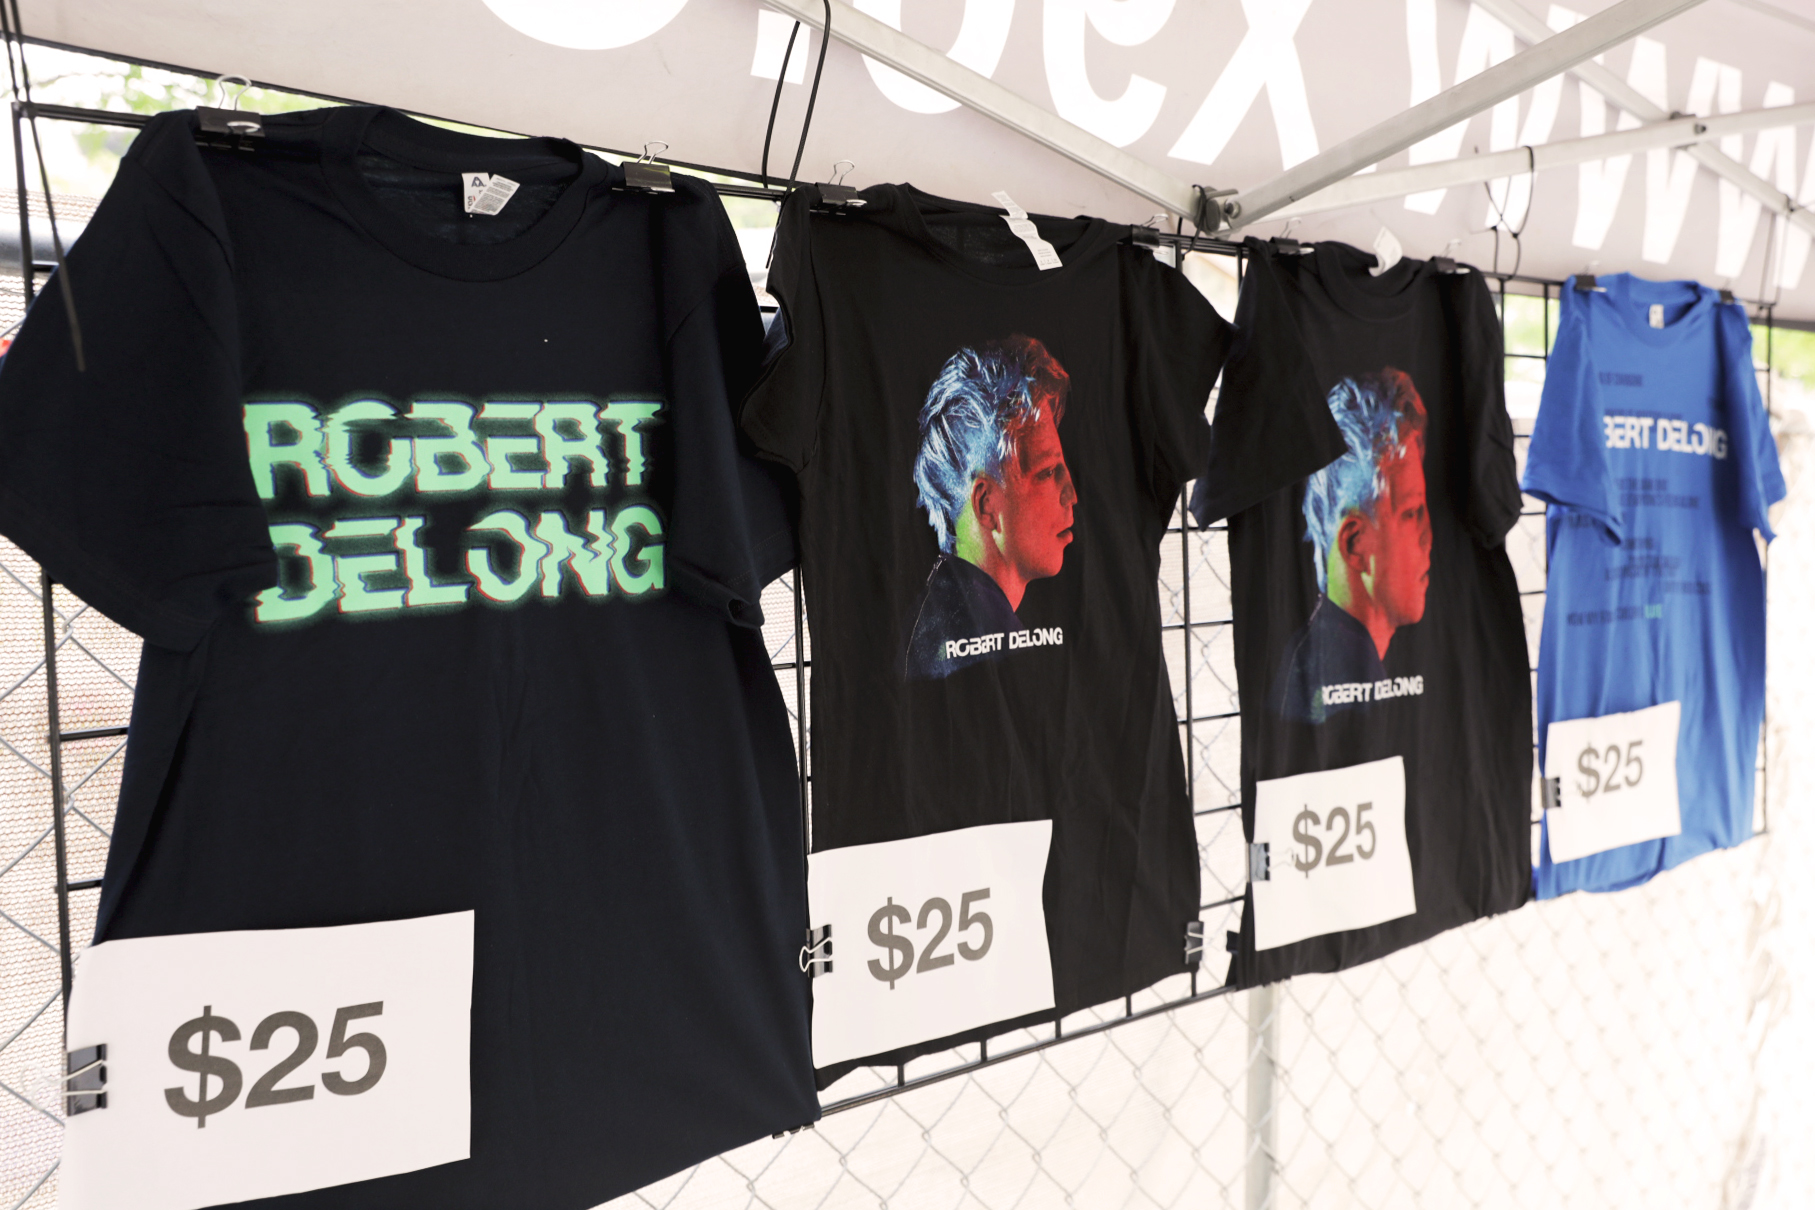 Robert DeLong Tees available to purchase at the merch tent. Photo: Logan Sorenson | Lmsorenson.net